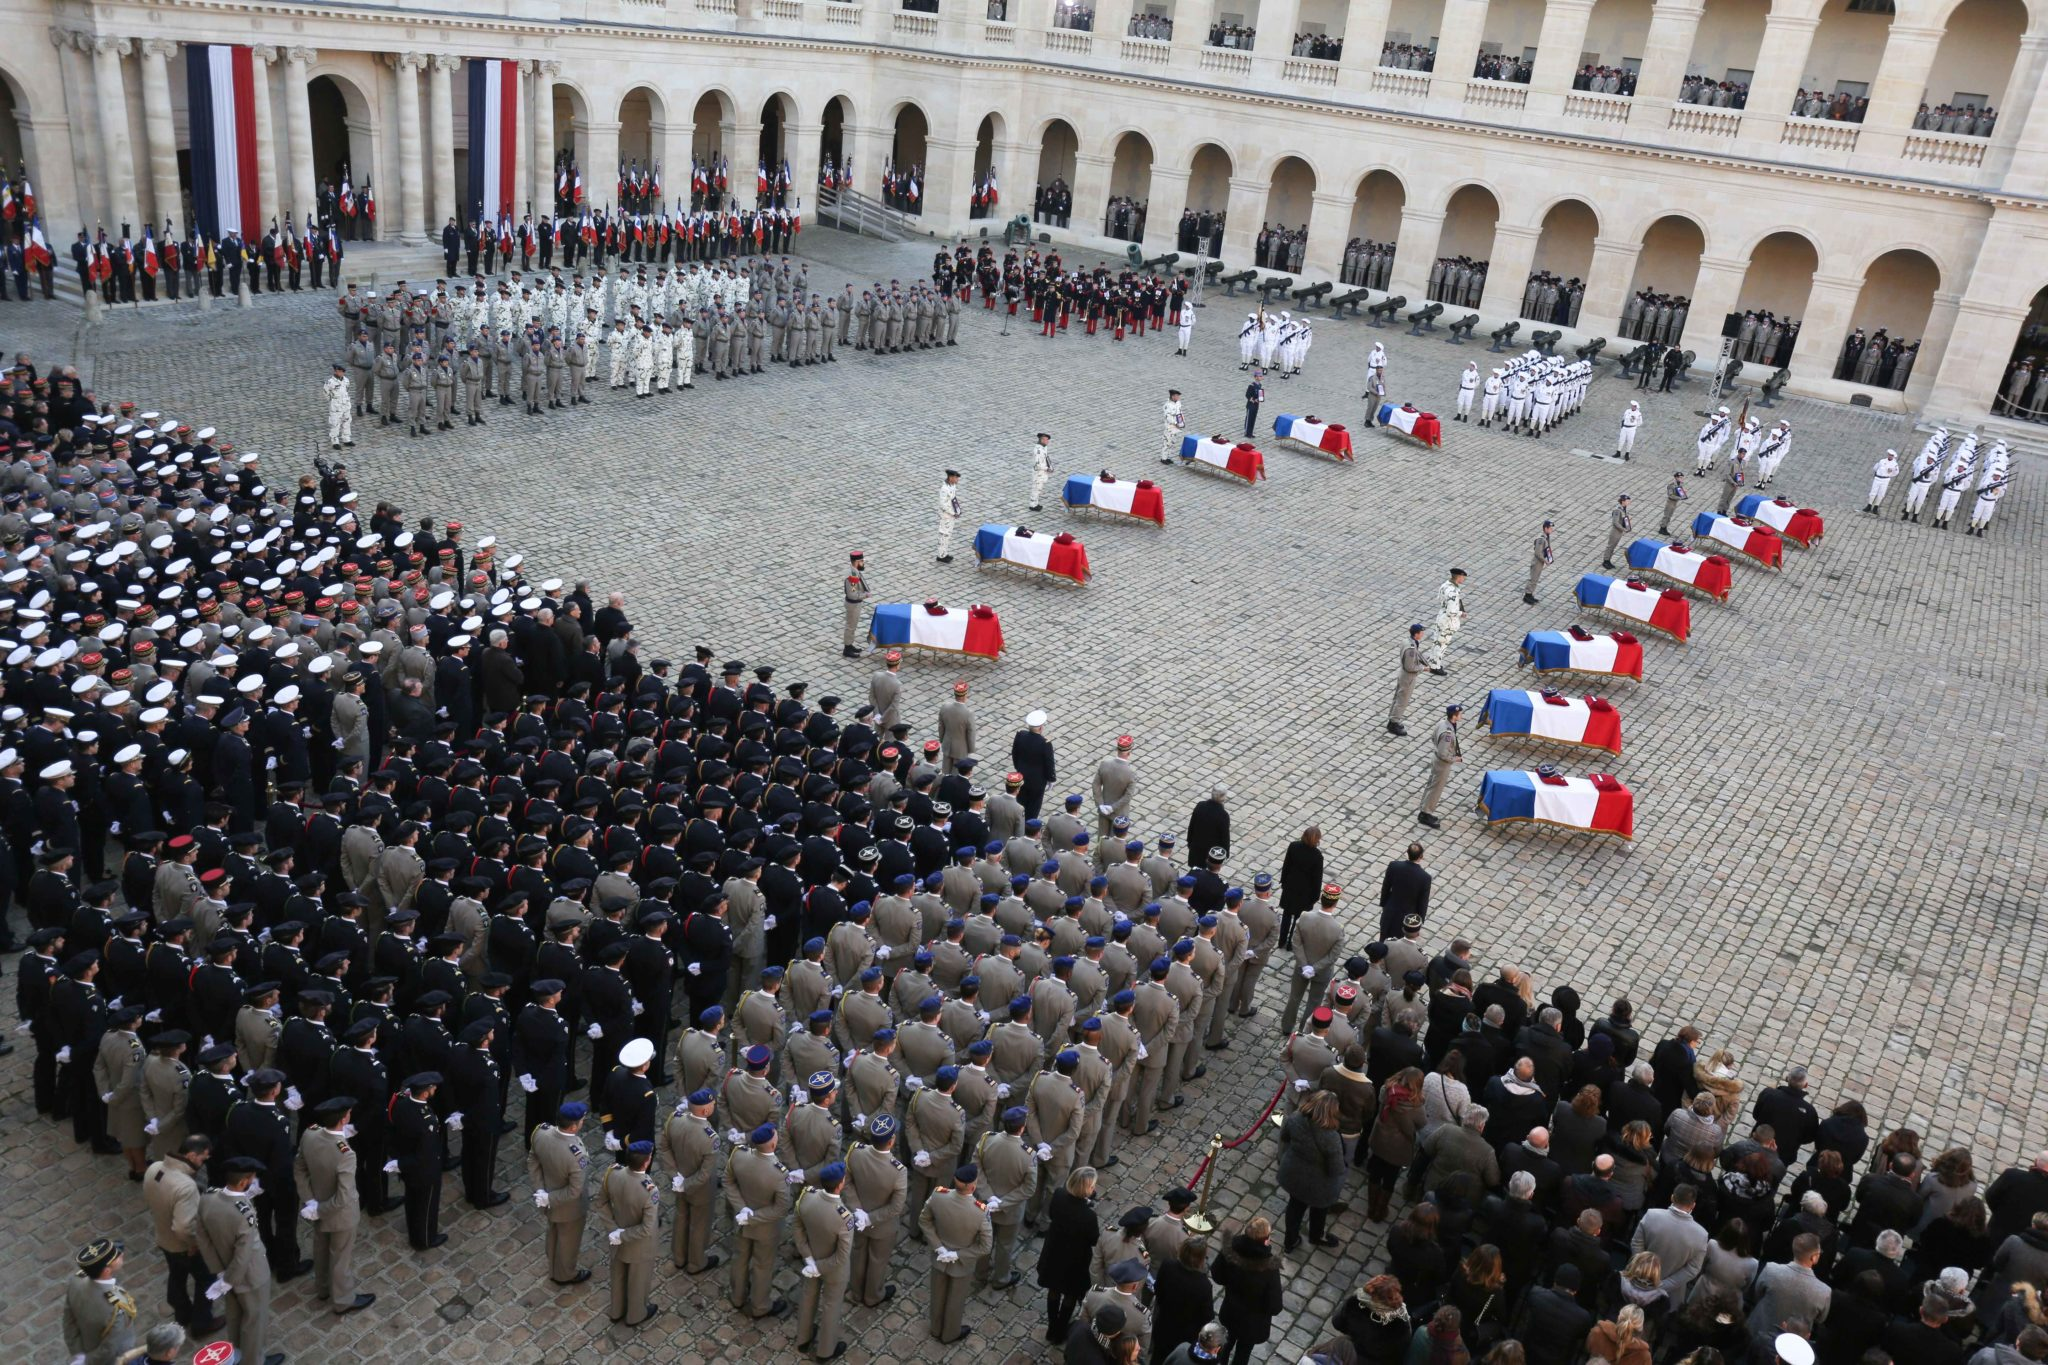 Soldats, officiels et parents assistent à la cérémonie d'hommage. © Michel Stoupak. Lun 02.12.2019, 15:32:08.